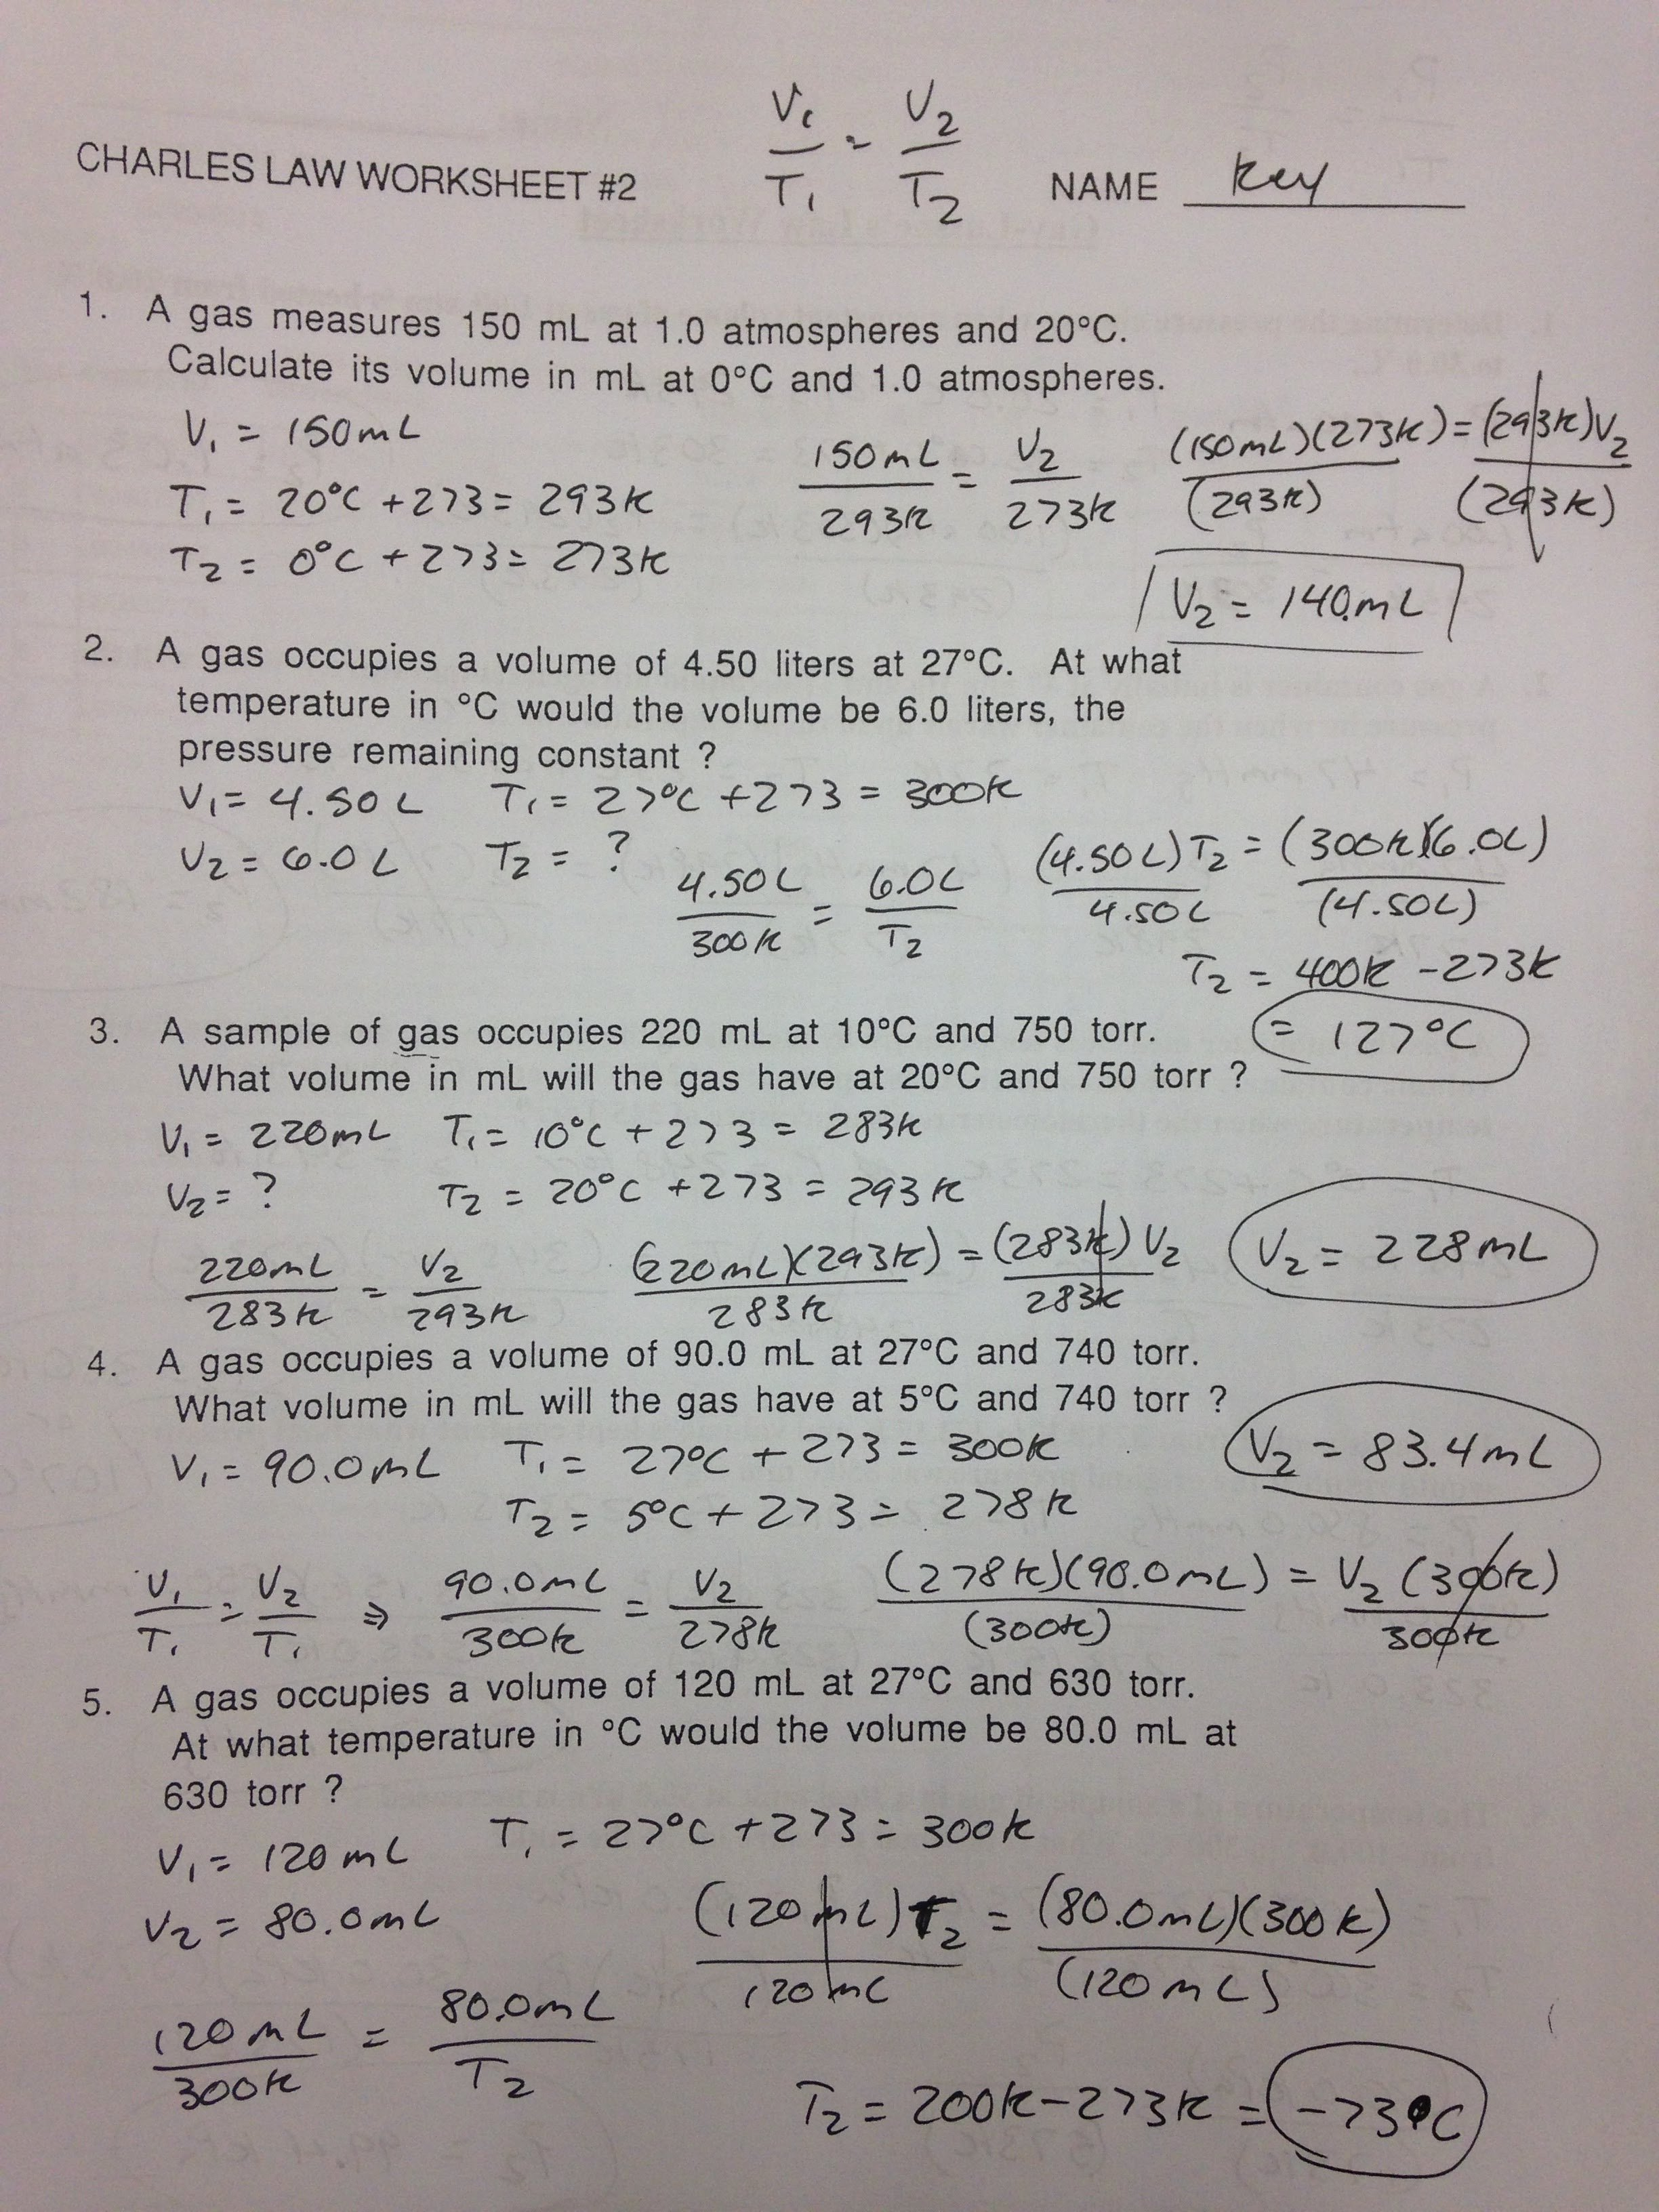 Charles Law Worksheet Answers Best Of Worksheet More Boyles Law and Charless Law Answer Key